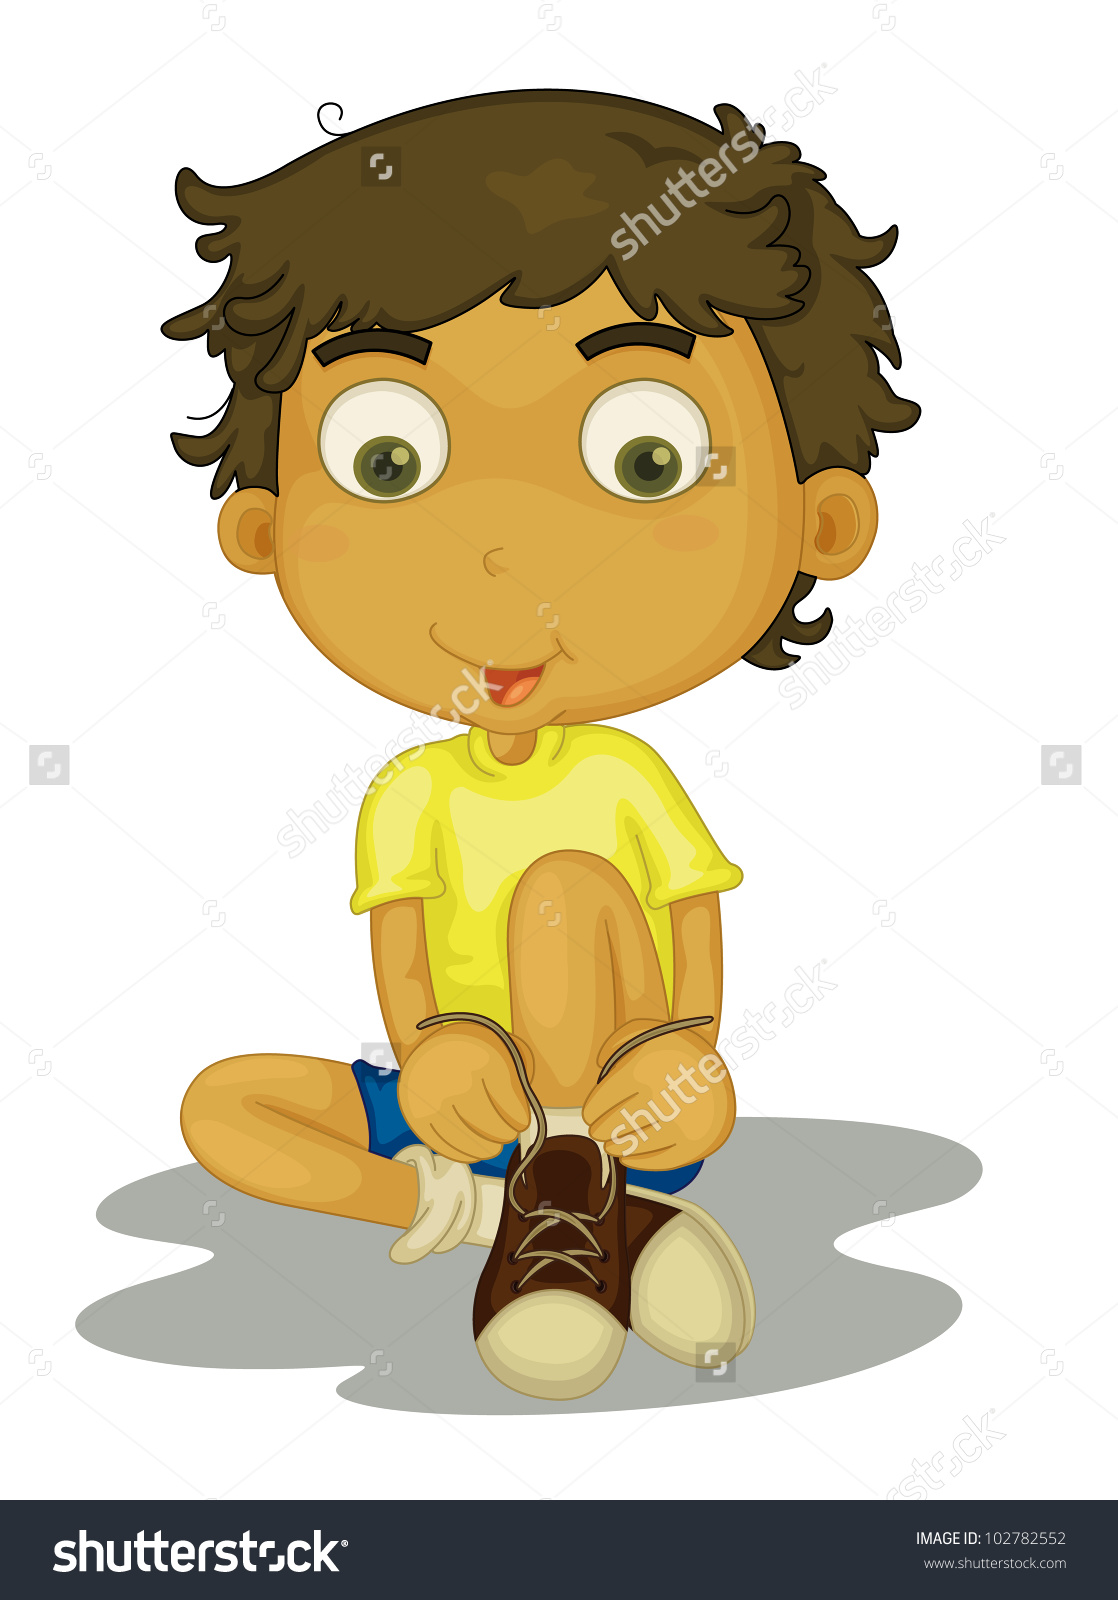 put on shoes clipart #13